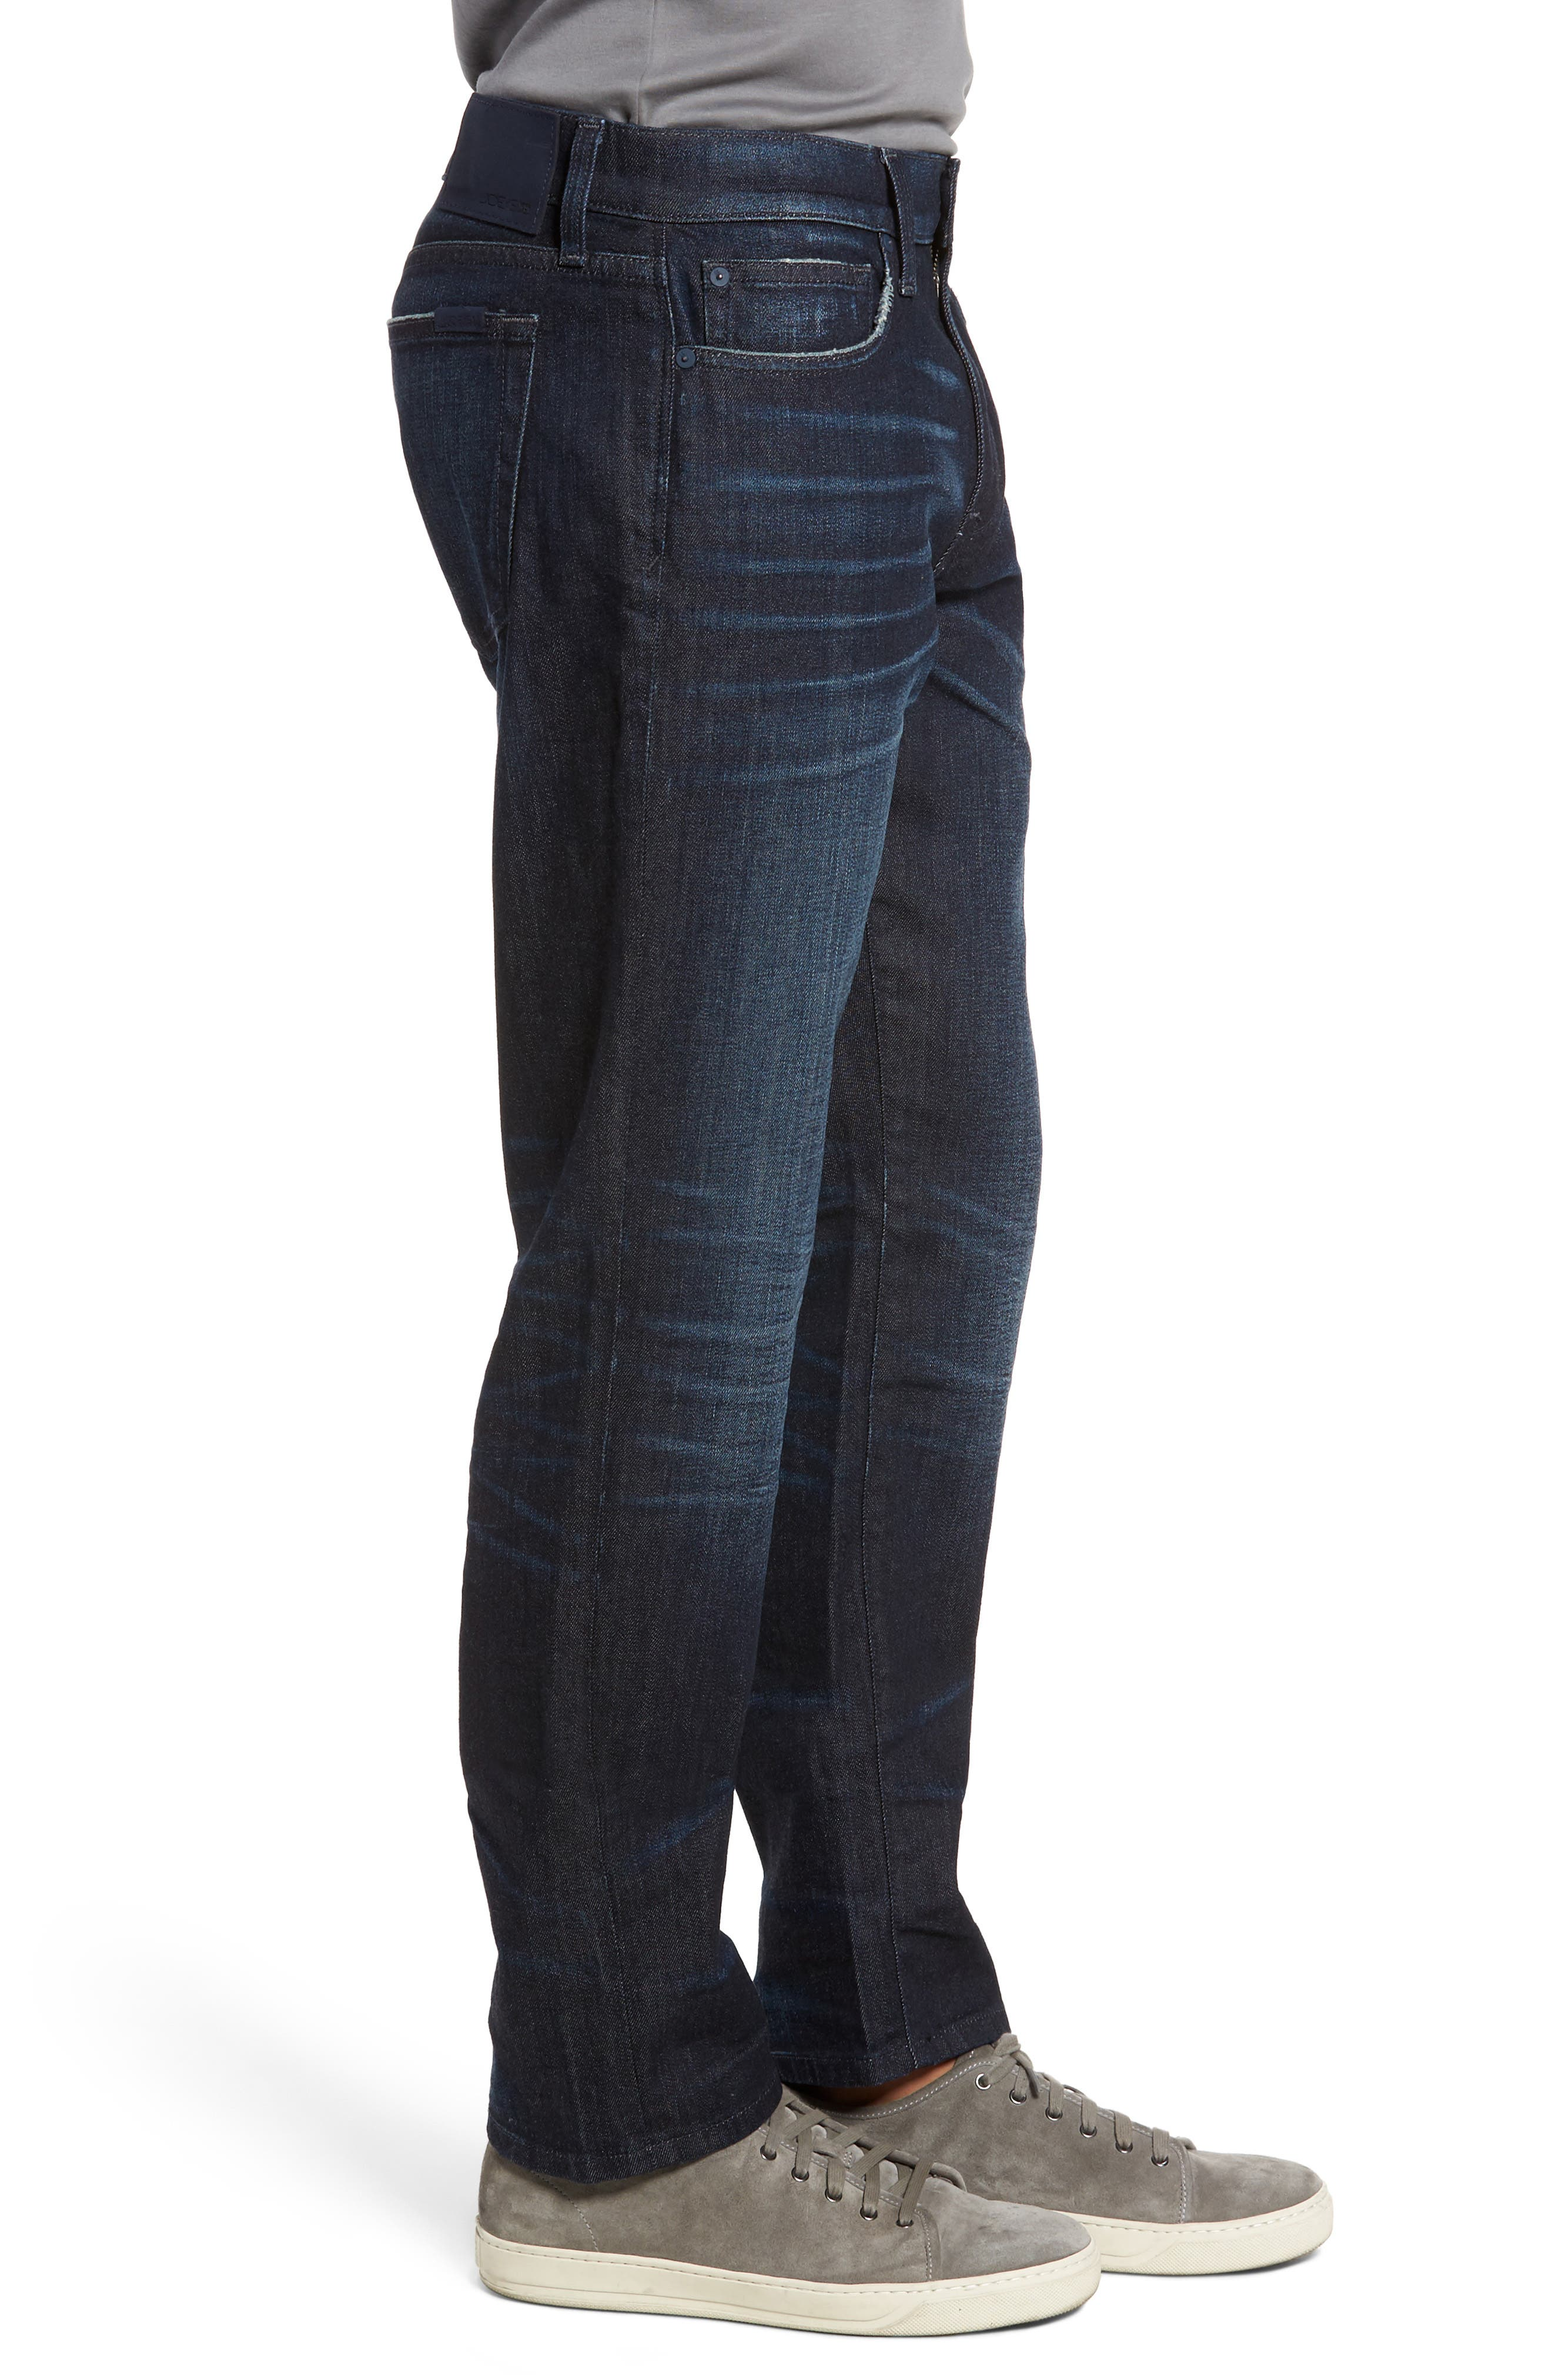 Brixton Slim Straight Fit Jeans,                             Alternate thumbnail 3, color,                             Maag